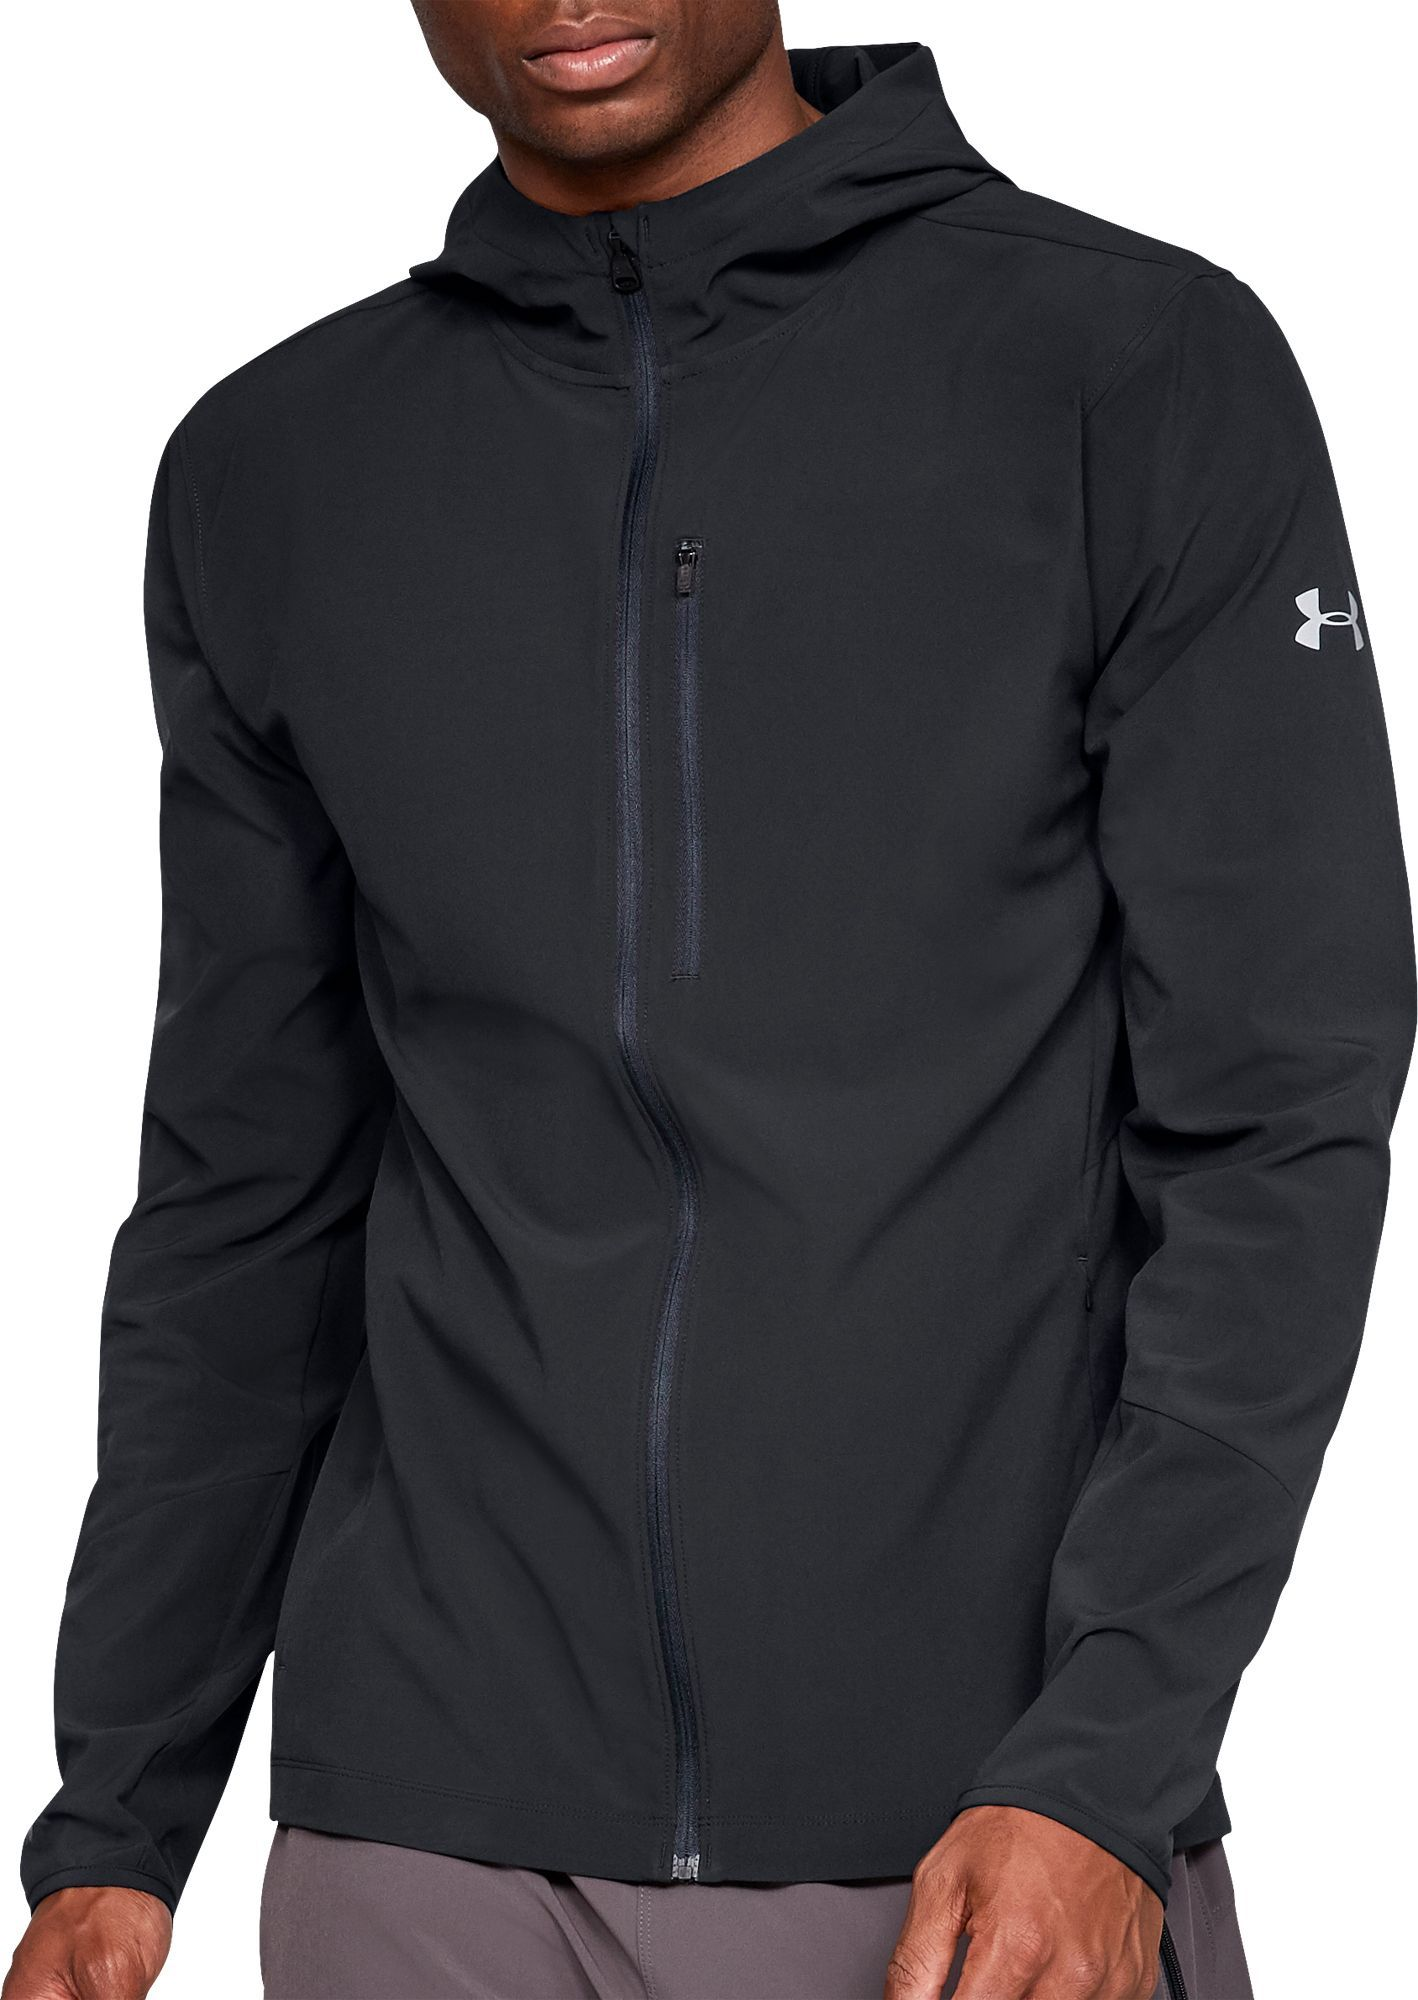 Under Armour Men S Outrun The Storm Jacket Products